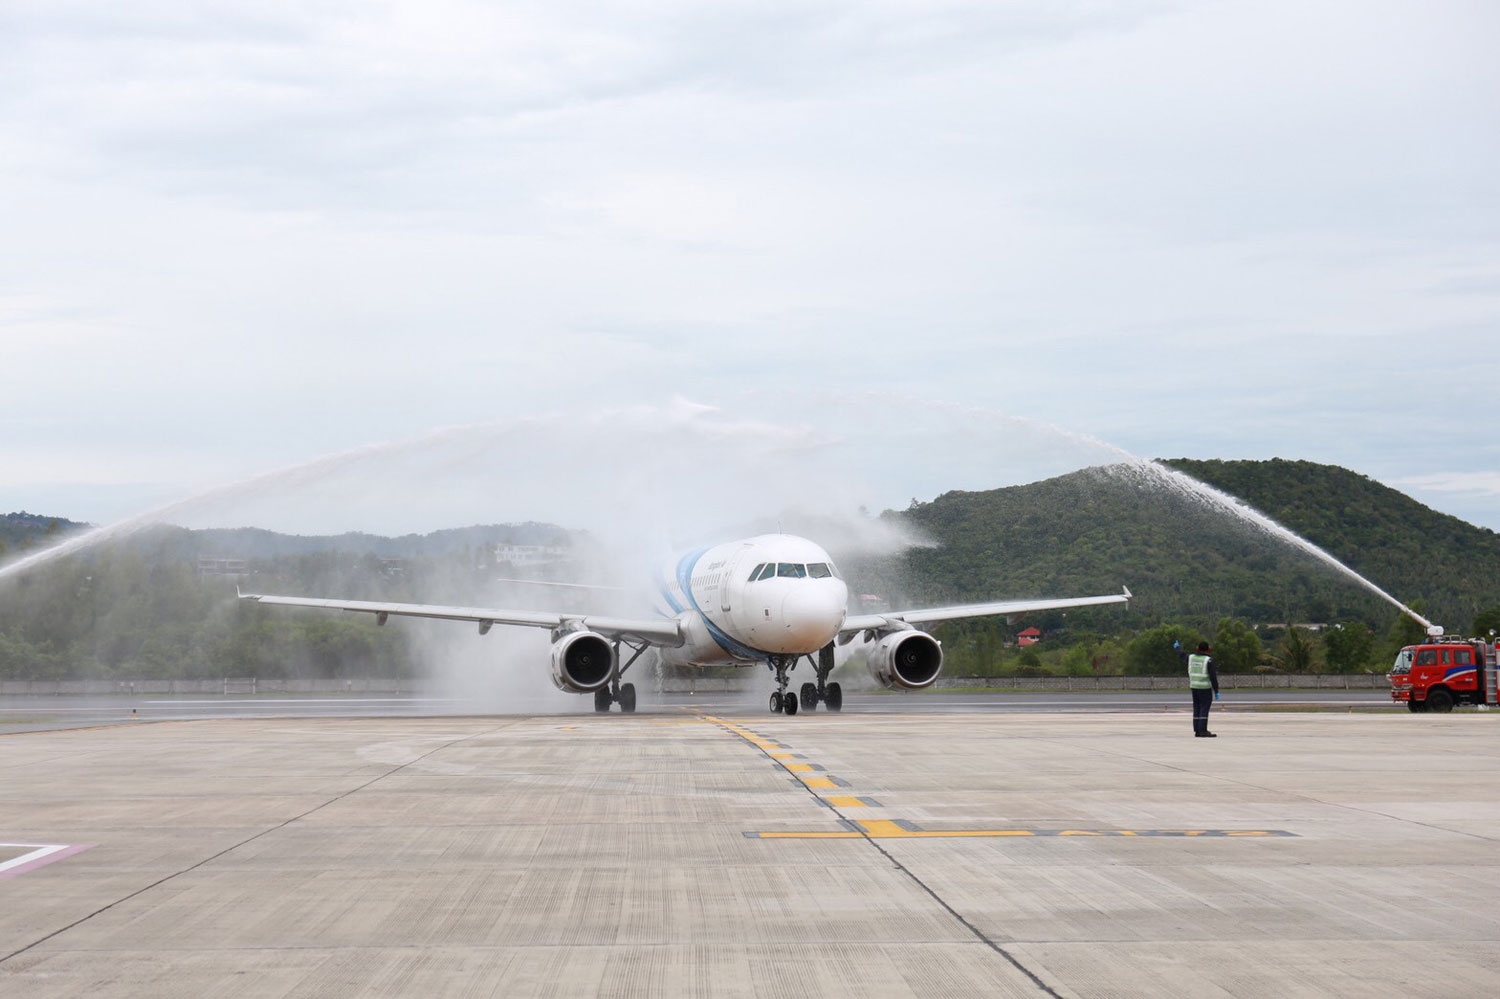 Fire engines spray water over a Bangkok Airways plane bringing the first group of foreign visitors to Koh Samui. (File photo: Supapong Chaolan)